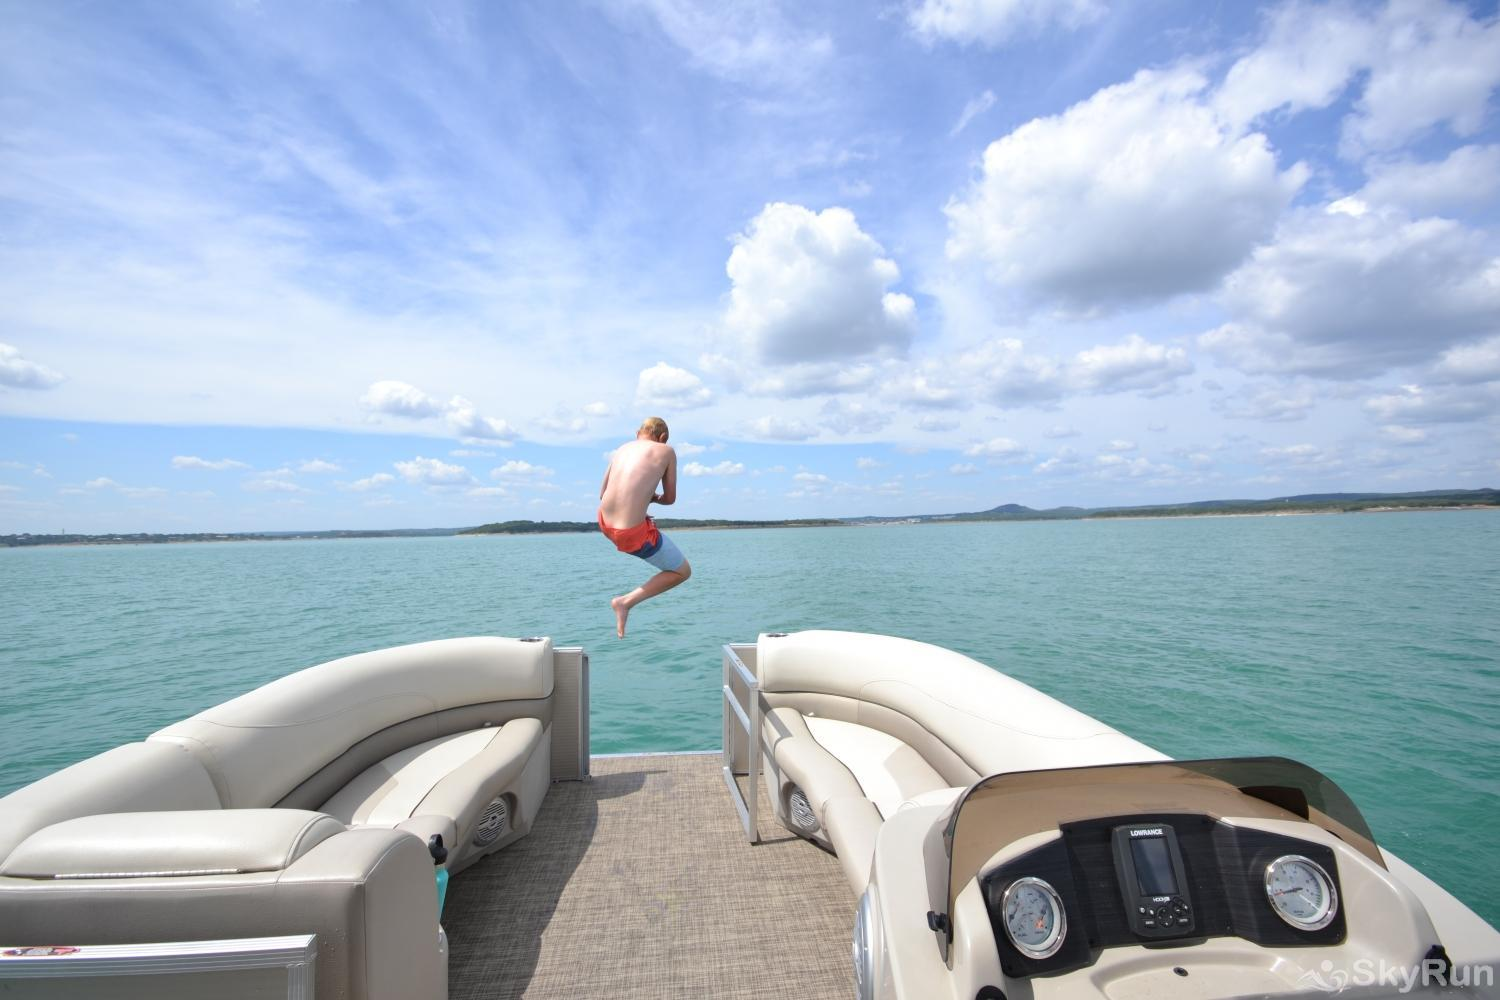 LAKESHORE ESCAPE Jump into all the fun the lake has to offer!